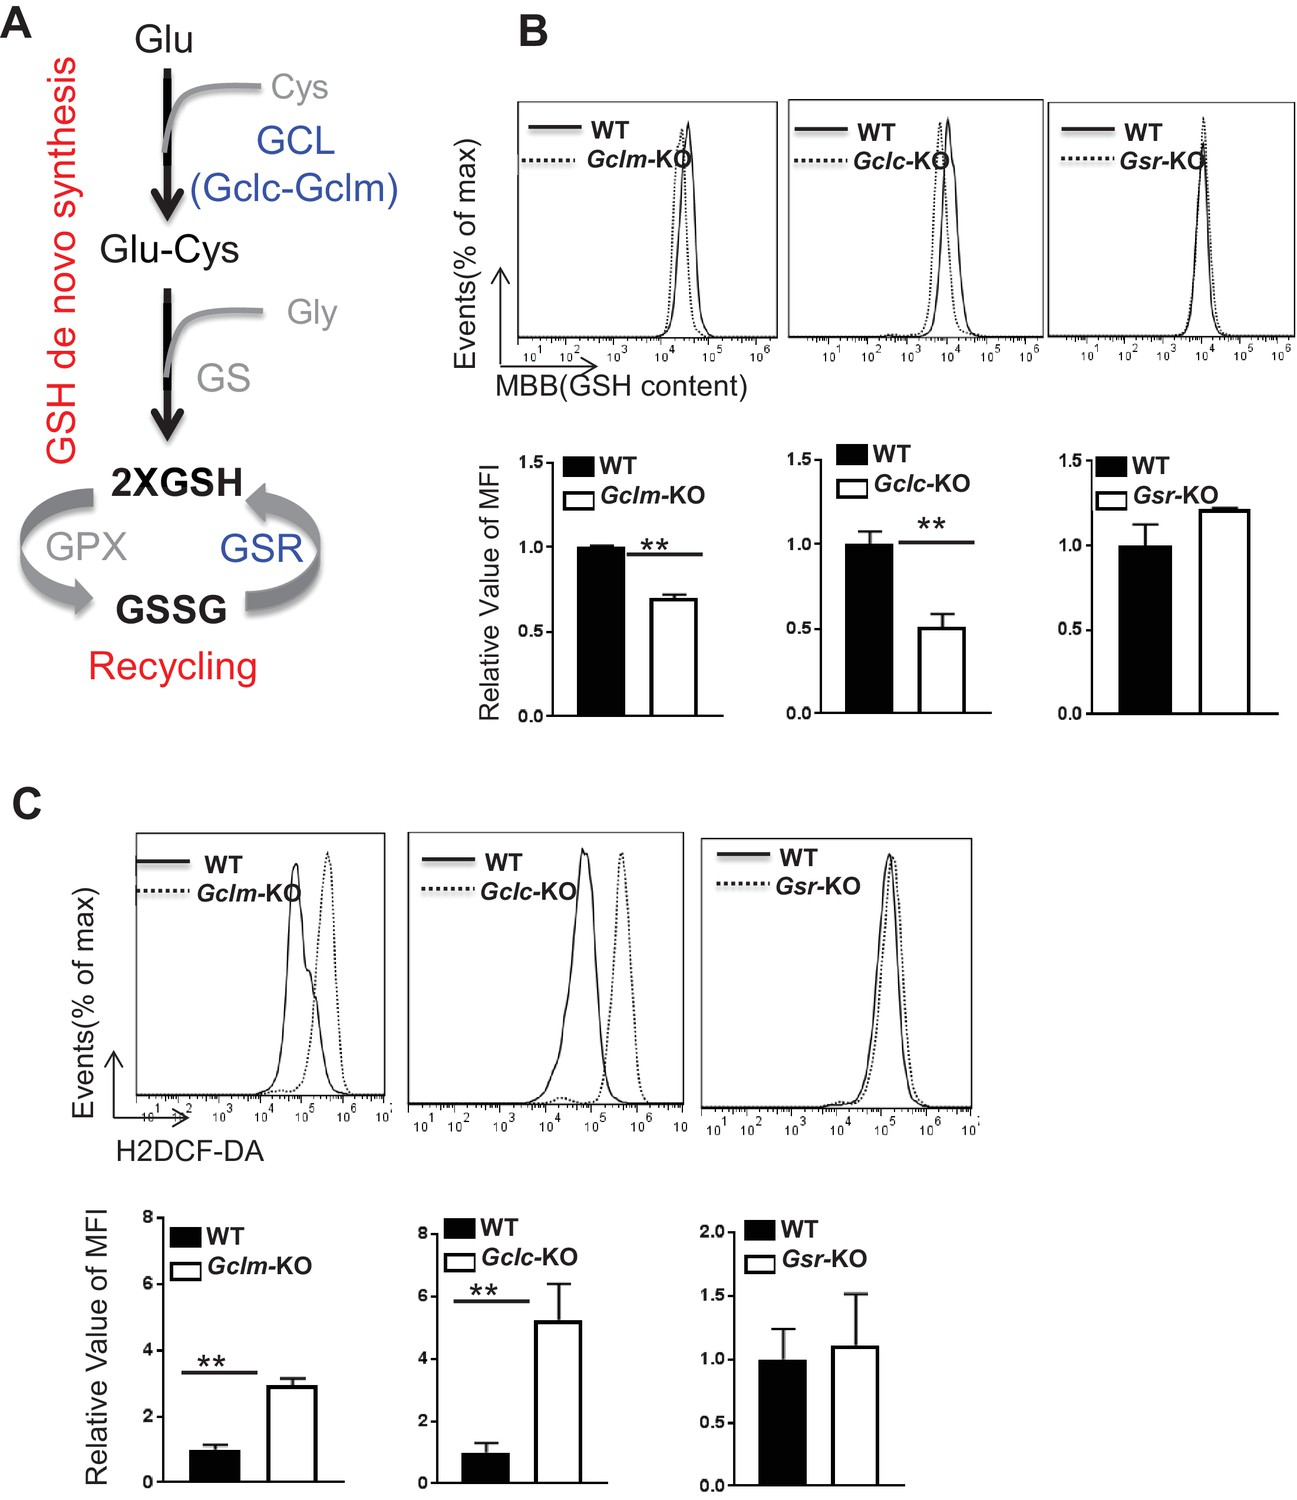 Herman Li Wiring Diagram Glutathione De Novo Synthesis But Not Recycling Process Coordinates Of Gssg Is Required For Producing Gsh And Fine Tuning Ros Upon Tcr Stimulation